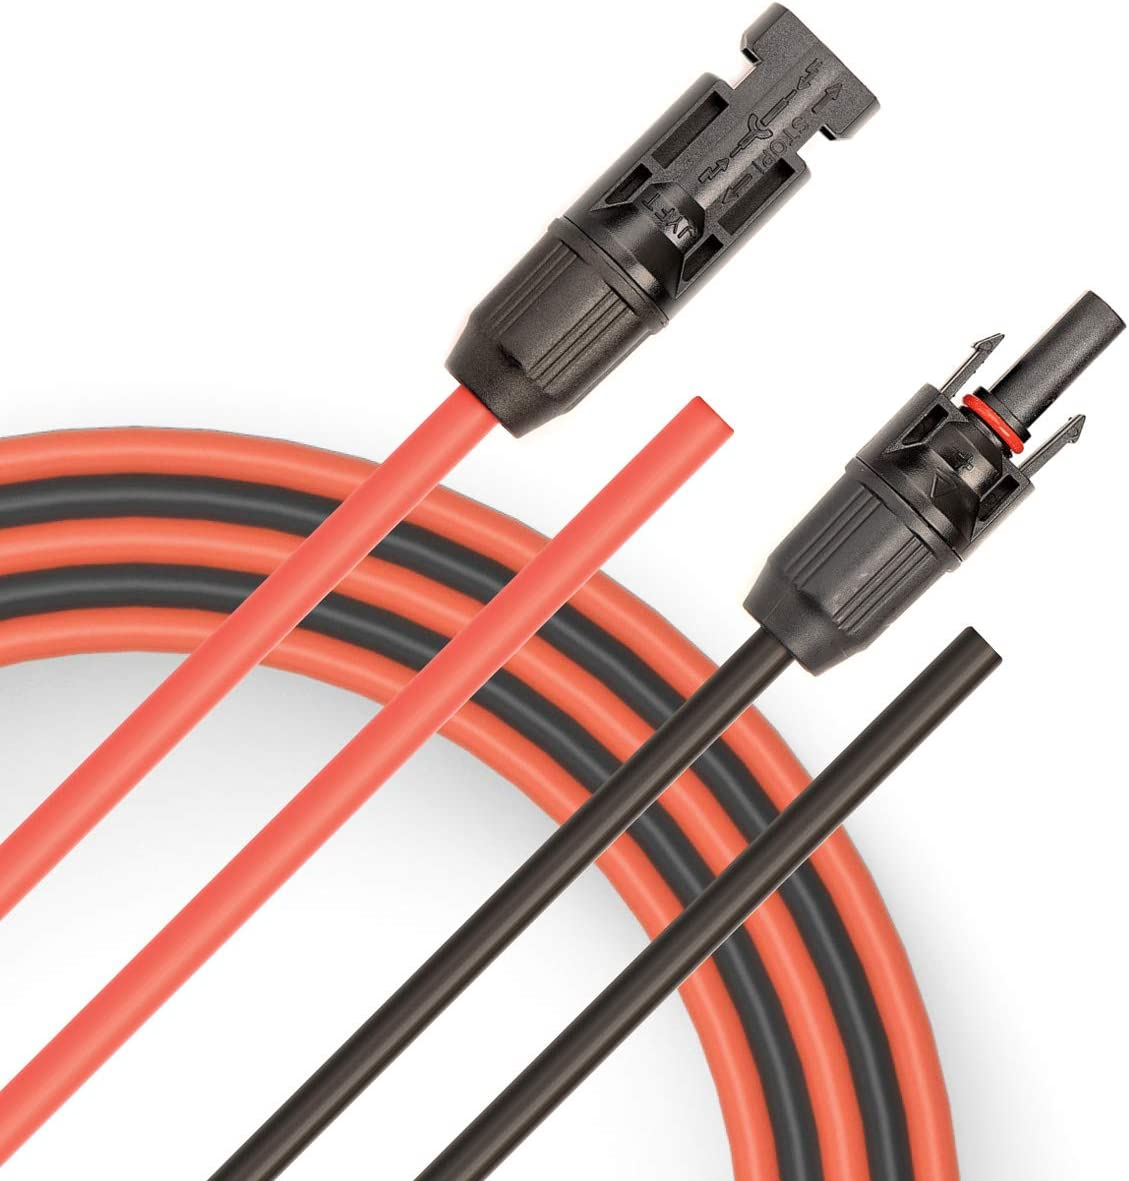 6mm/² Female and Male Connector Compatible with MC4 Solar Extension Cable with PV Compatible 30FT Red + 30FT Black JYFT 10AWG